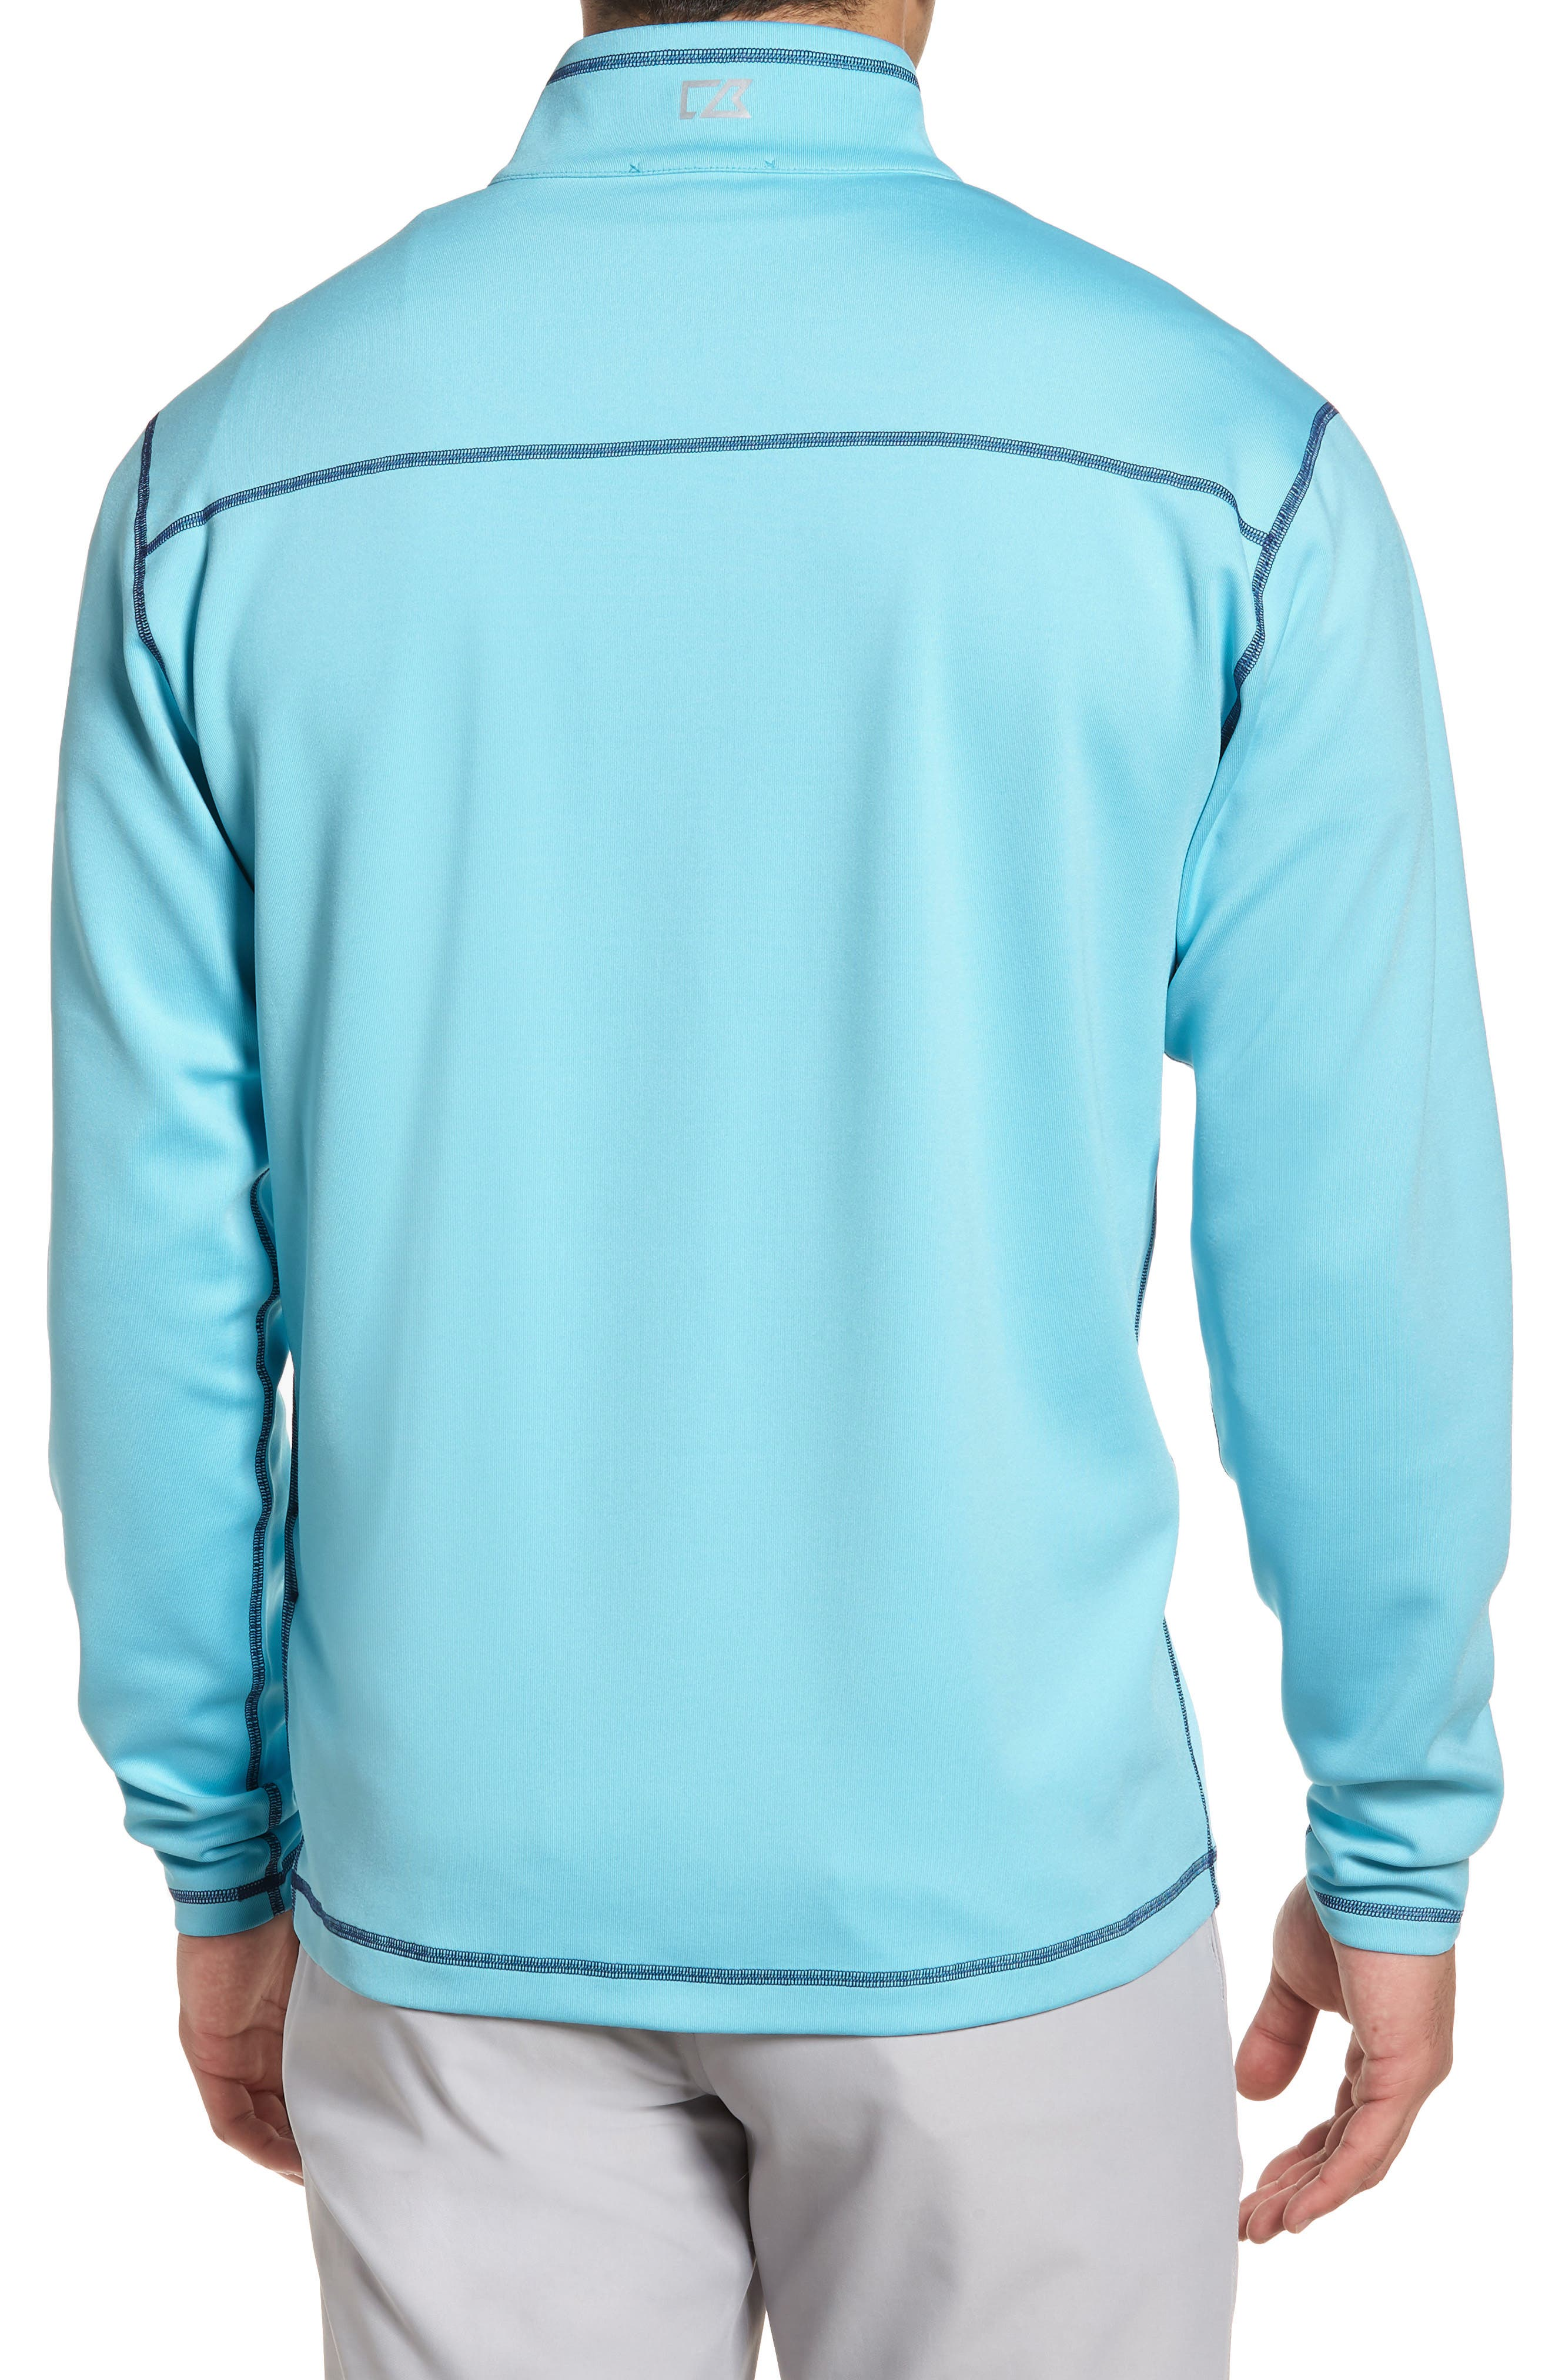 Alternate Image 2  - Cutter & Buck Evergreen Classic Fit DryTec Reversible Half Zip Pullover